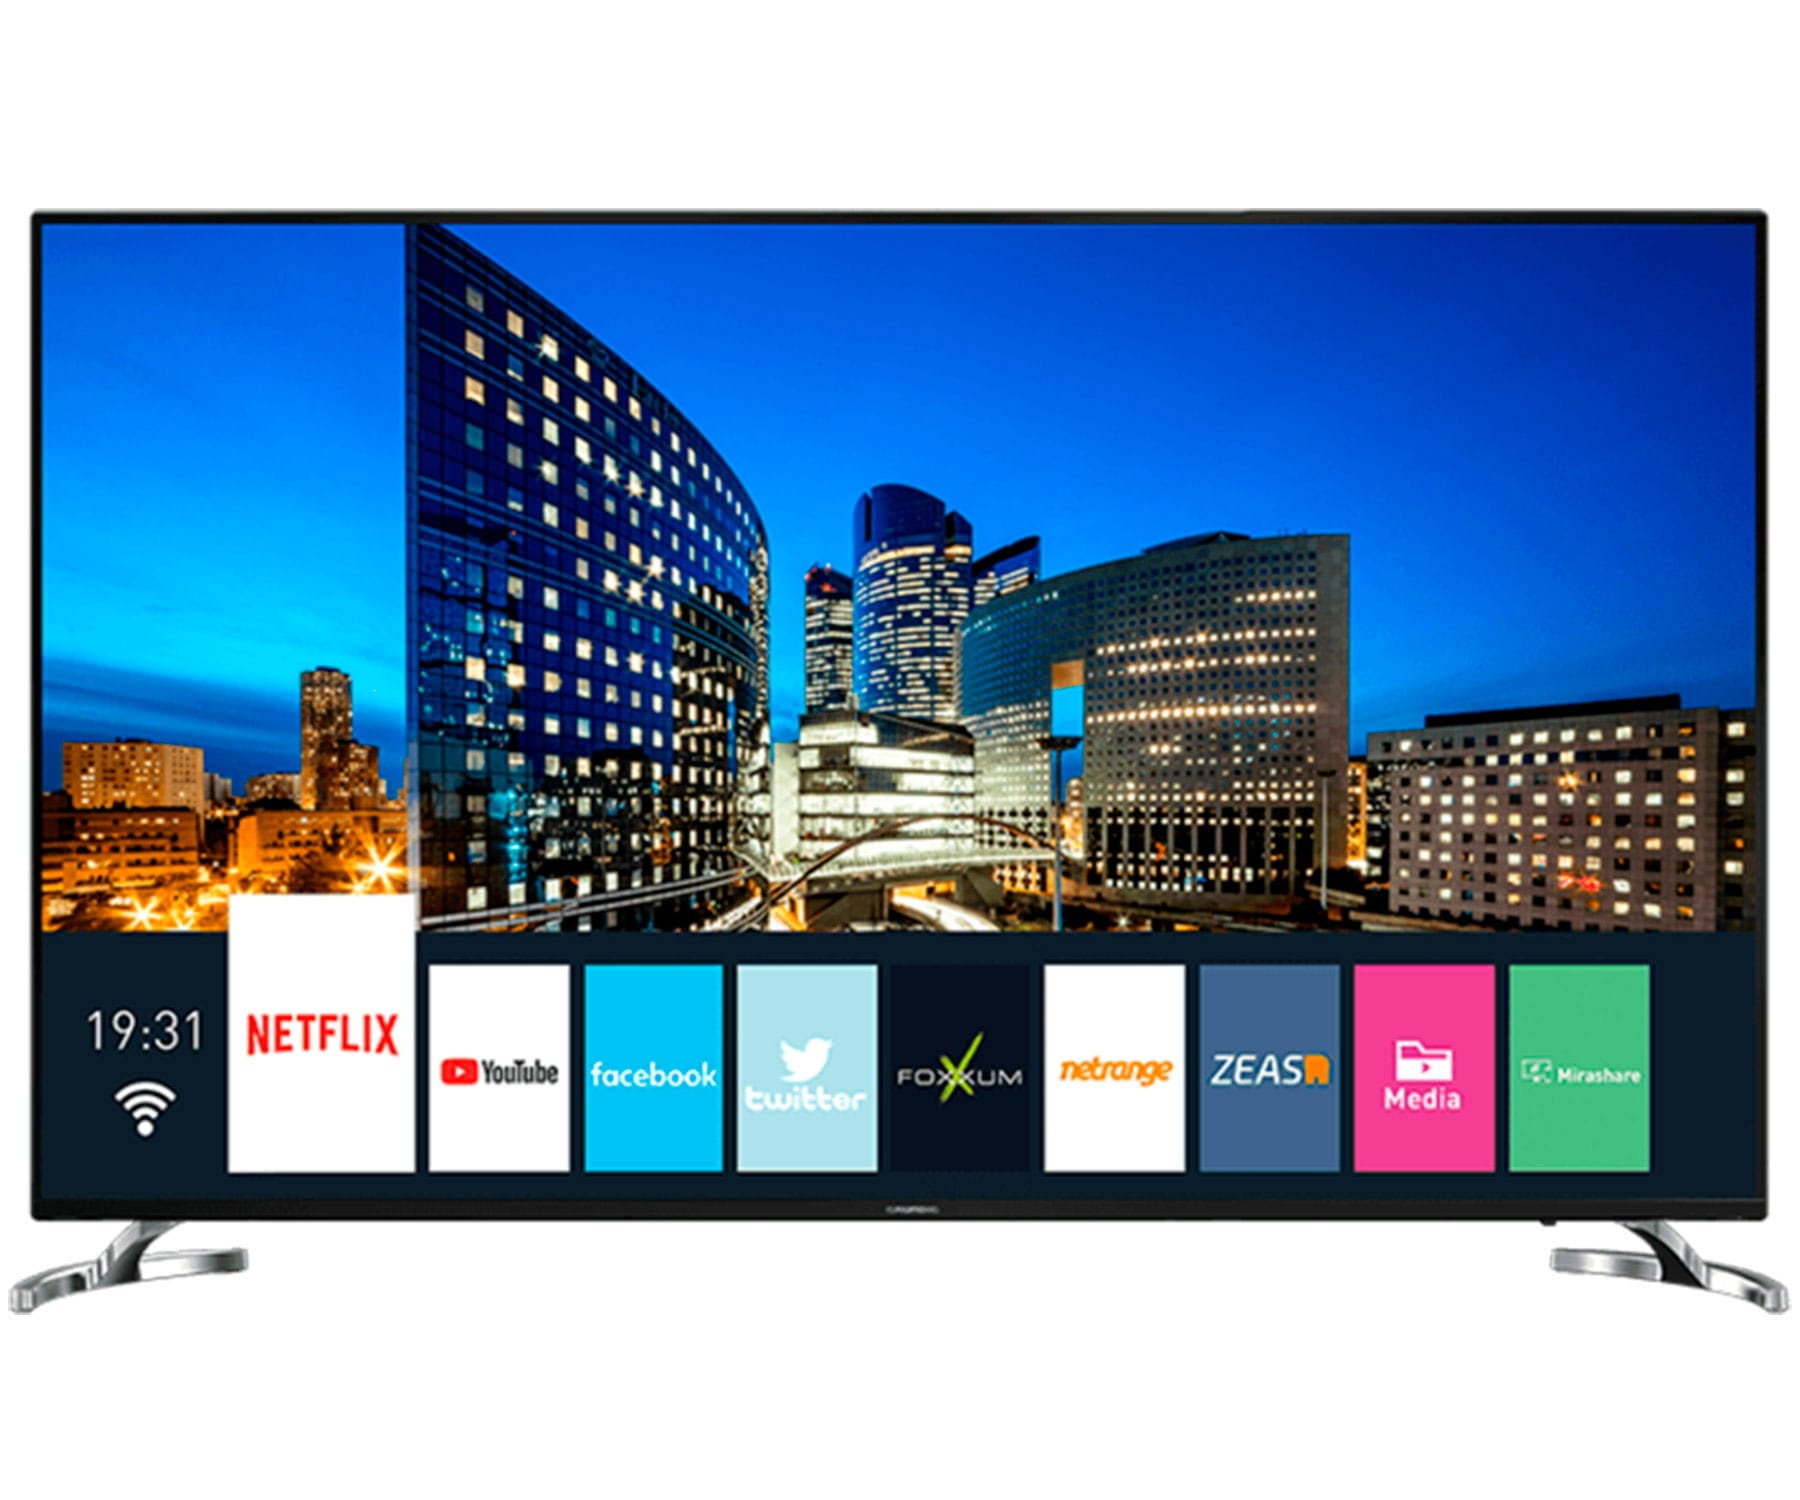 GRUNDIG 75VLX7860 TELEVISOR 75'' LCD LED 4K UHD HDR 1400Hz SMART TV WIFI LAN HDMI USB CI+